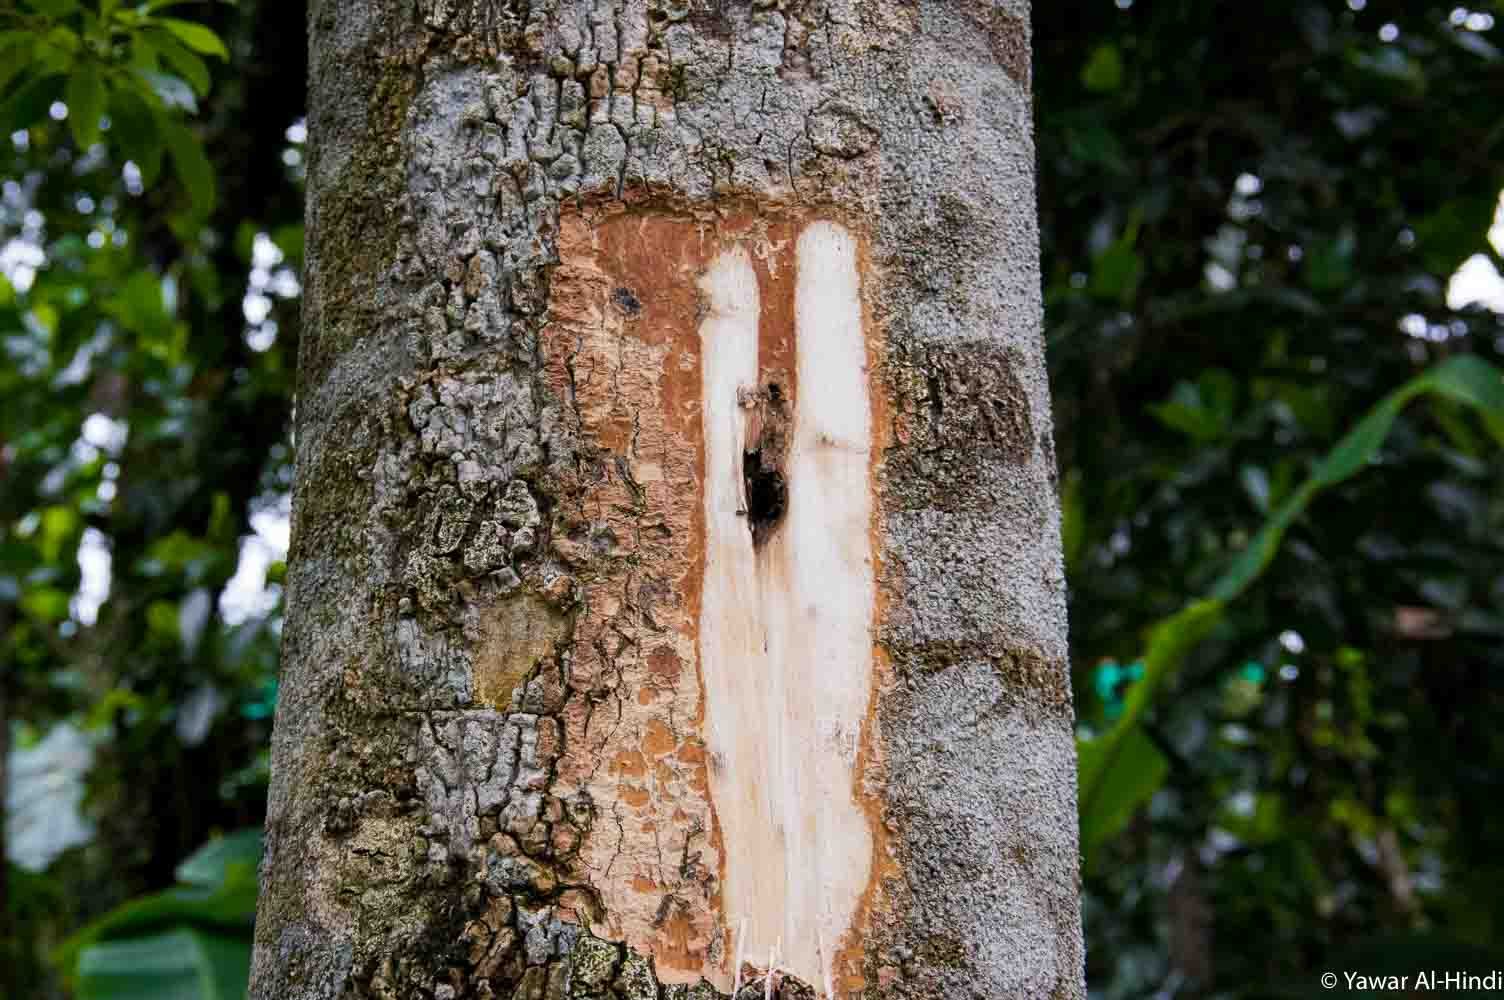 Agarwood tree infected section